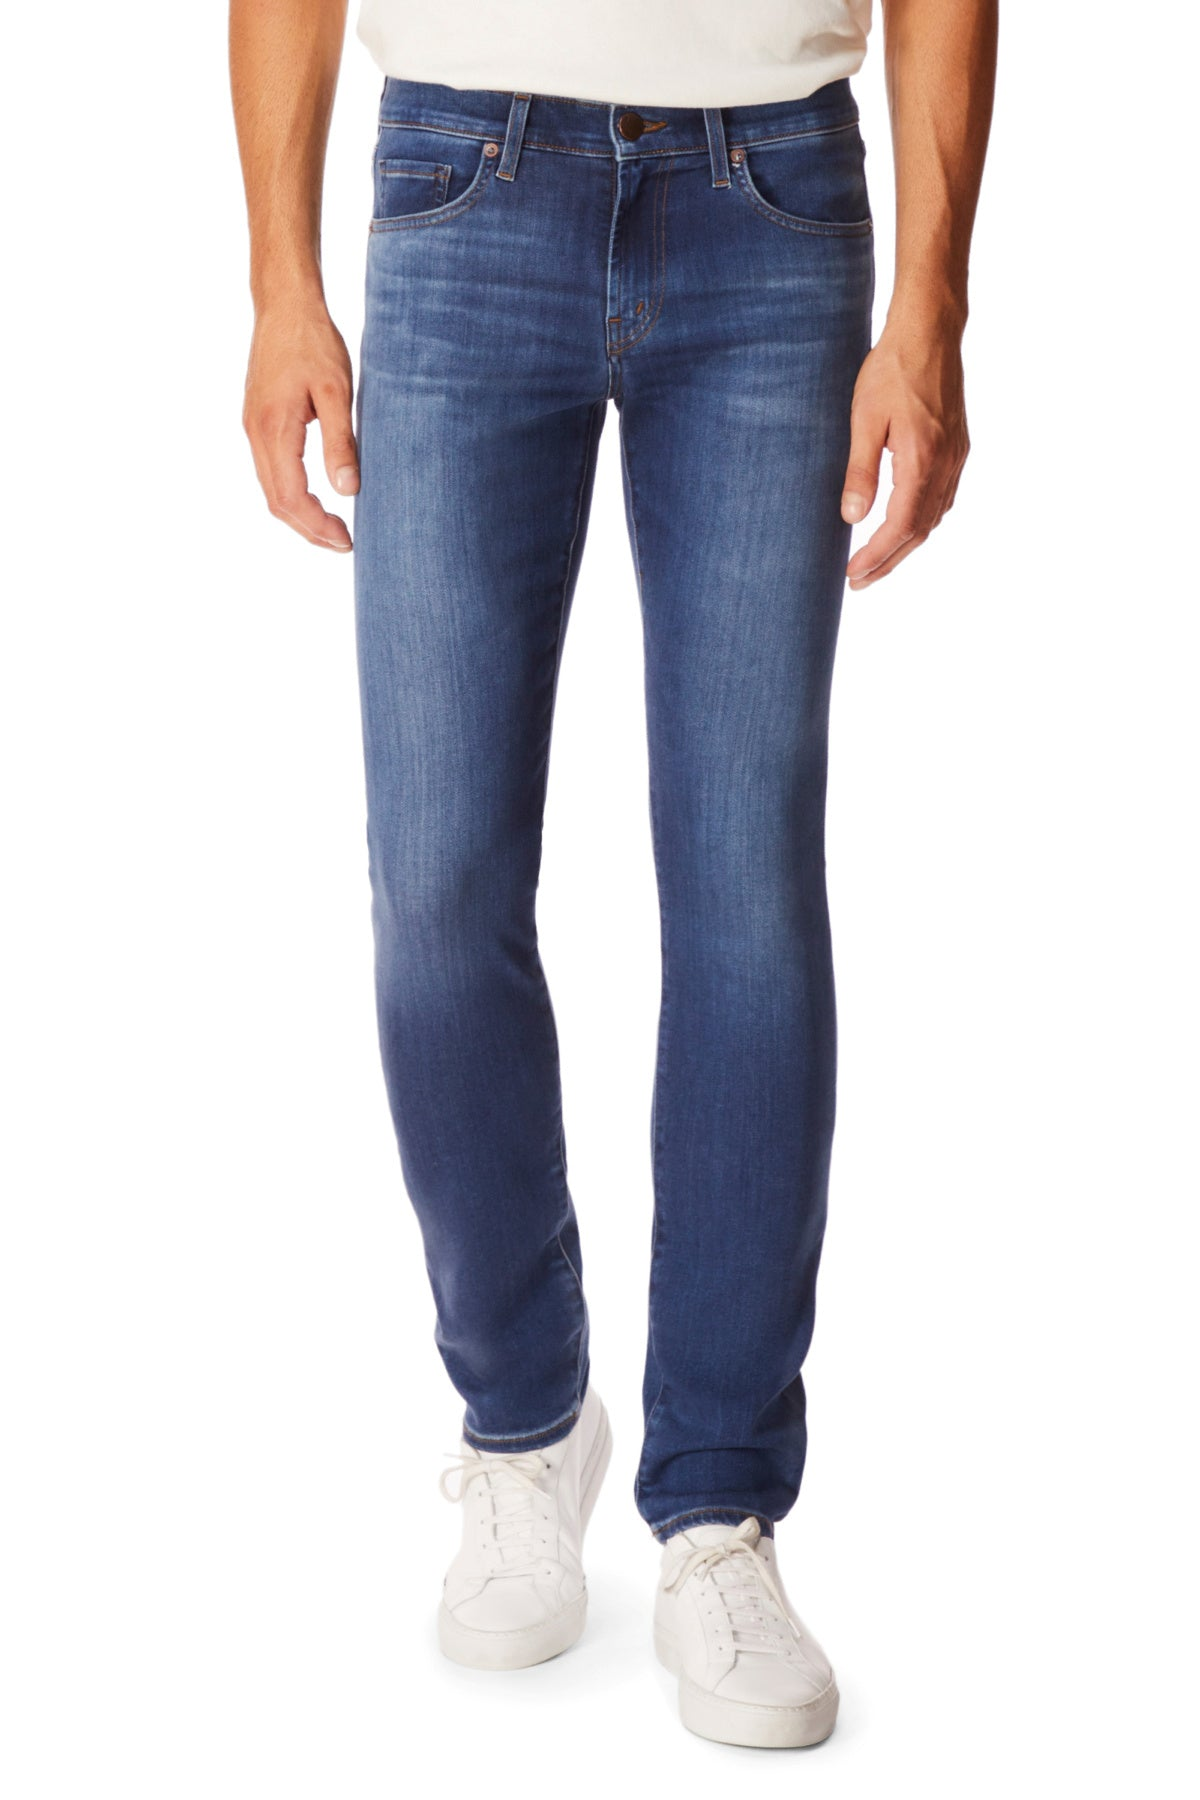 J Brand Tyler Slim Fit Jean In Seriously Soft Nulite JB001963-NULITE